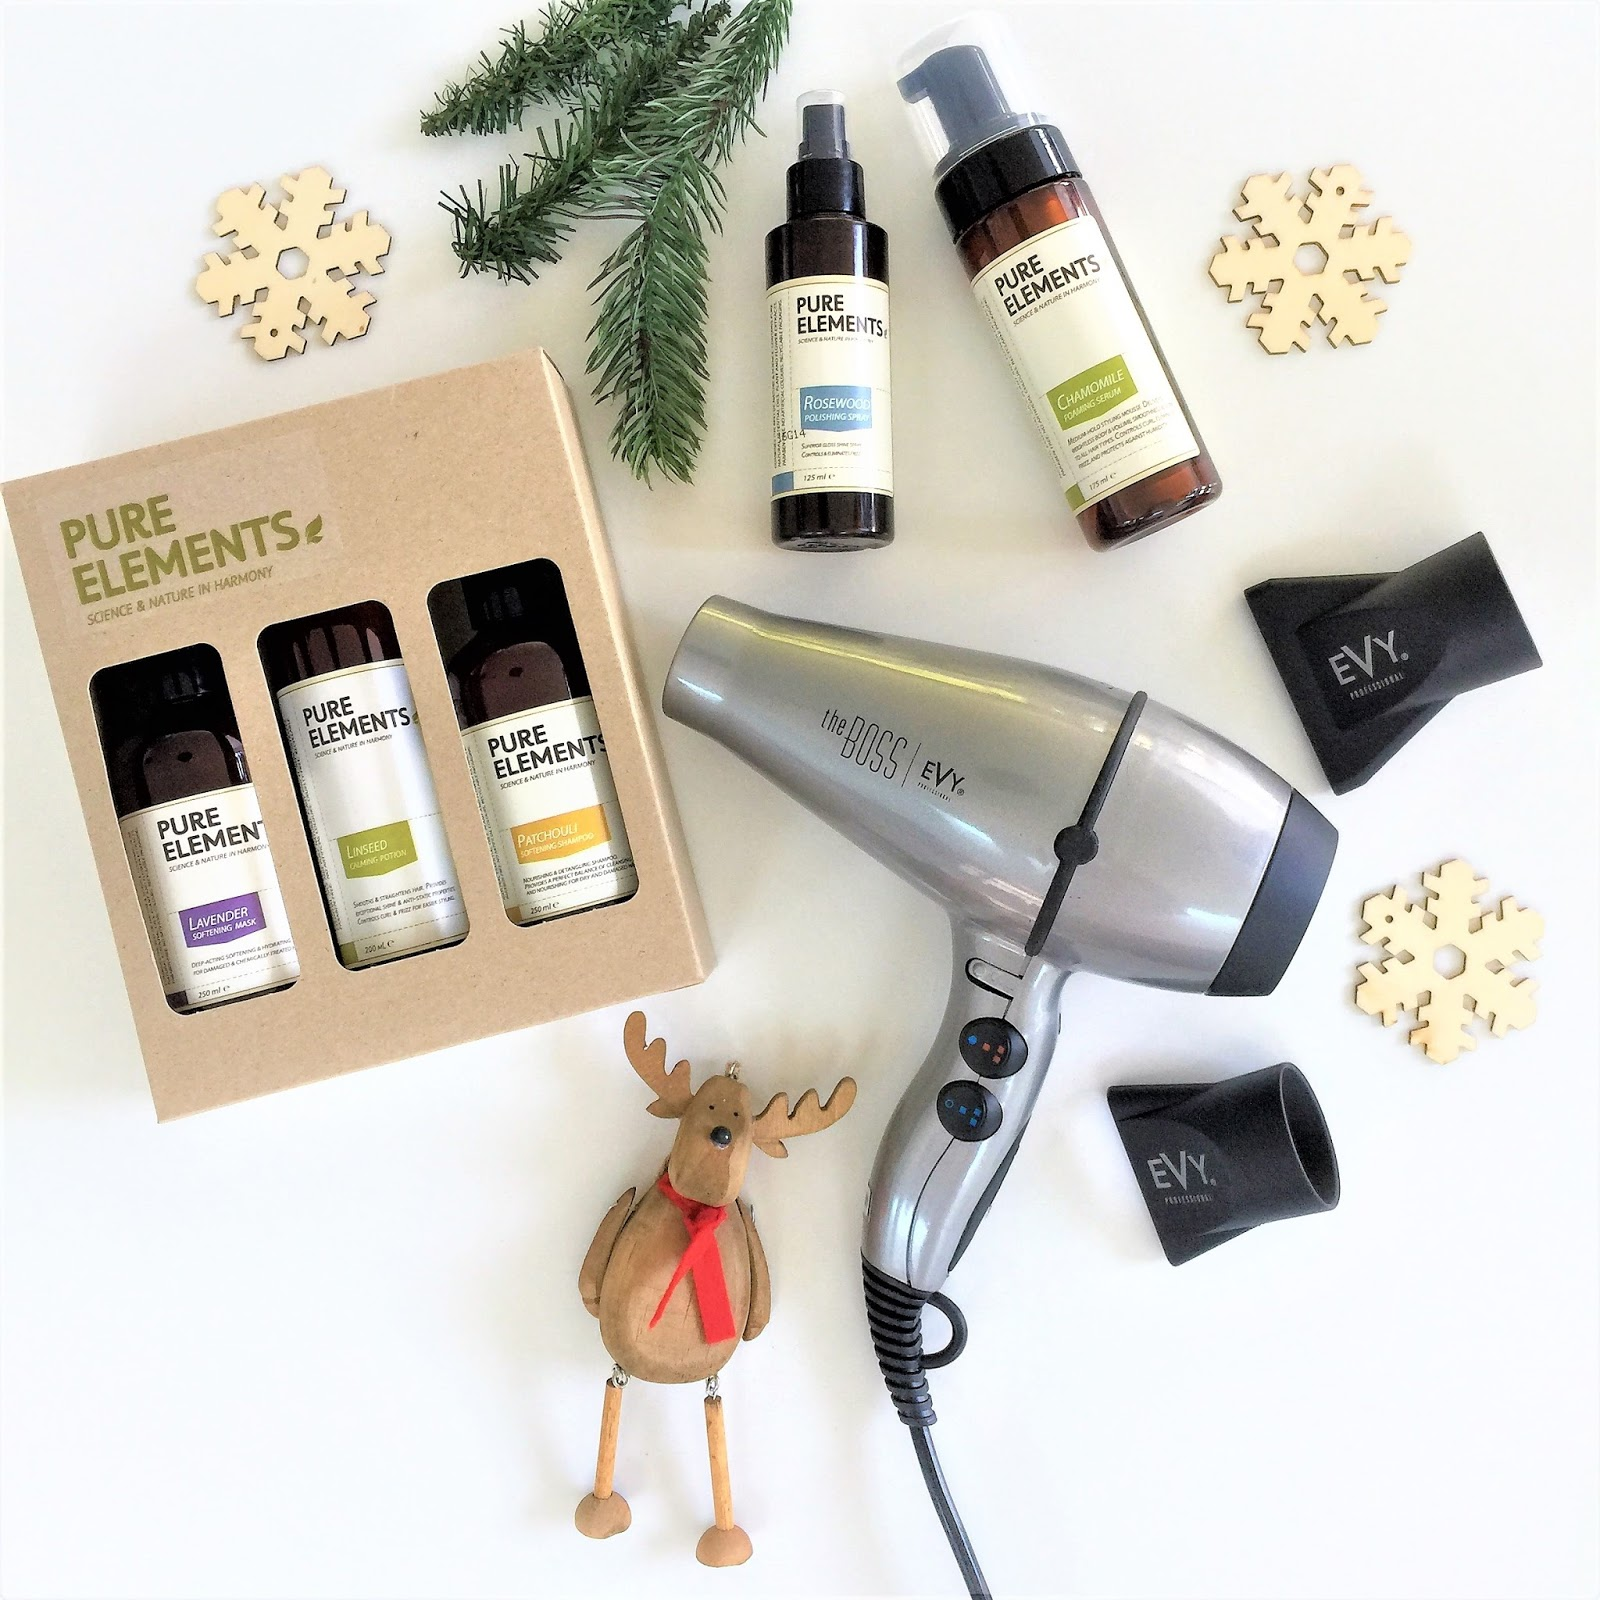 If you are still looking for great gift ideas then what about some hair care. The Pure Elements has some incredible Xmas gift packs.  sc 1 st  The Beauty u0026 Lifestyle Hunter & XMAS GIFT IDEAS FROM PURE ELEMENTS AND EVY PROFESSIONAL | The Beauty ...